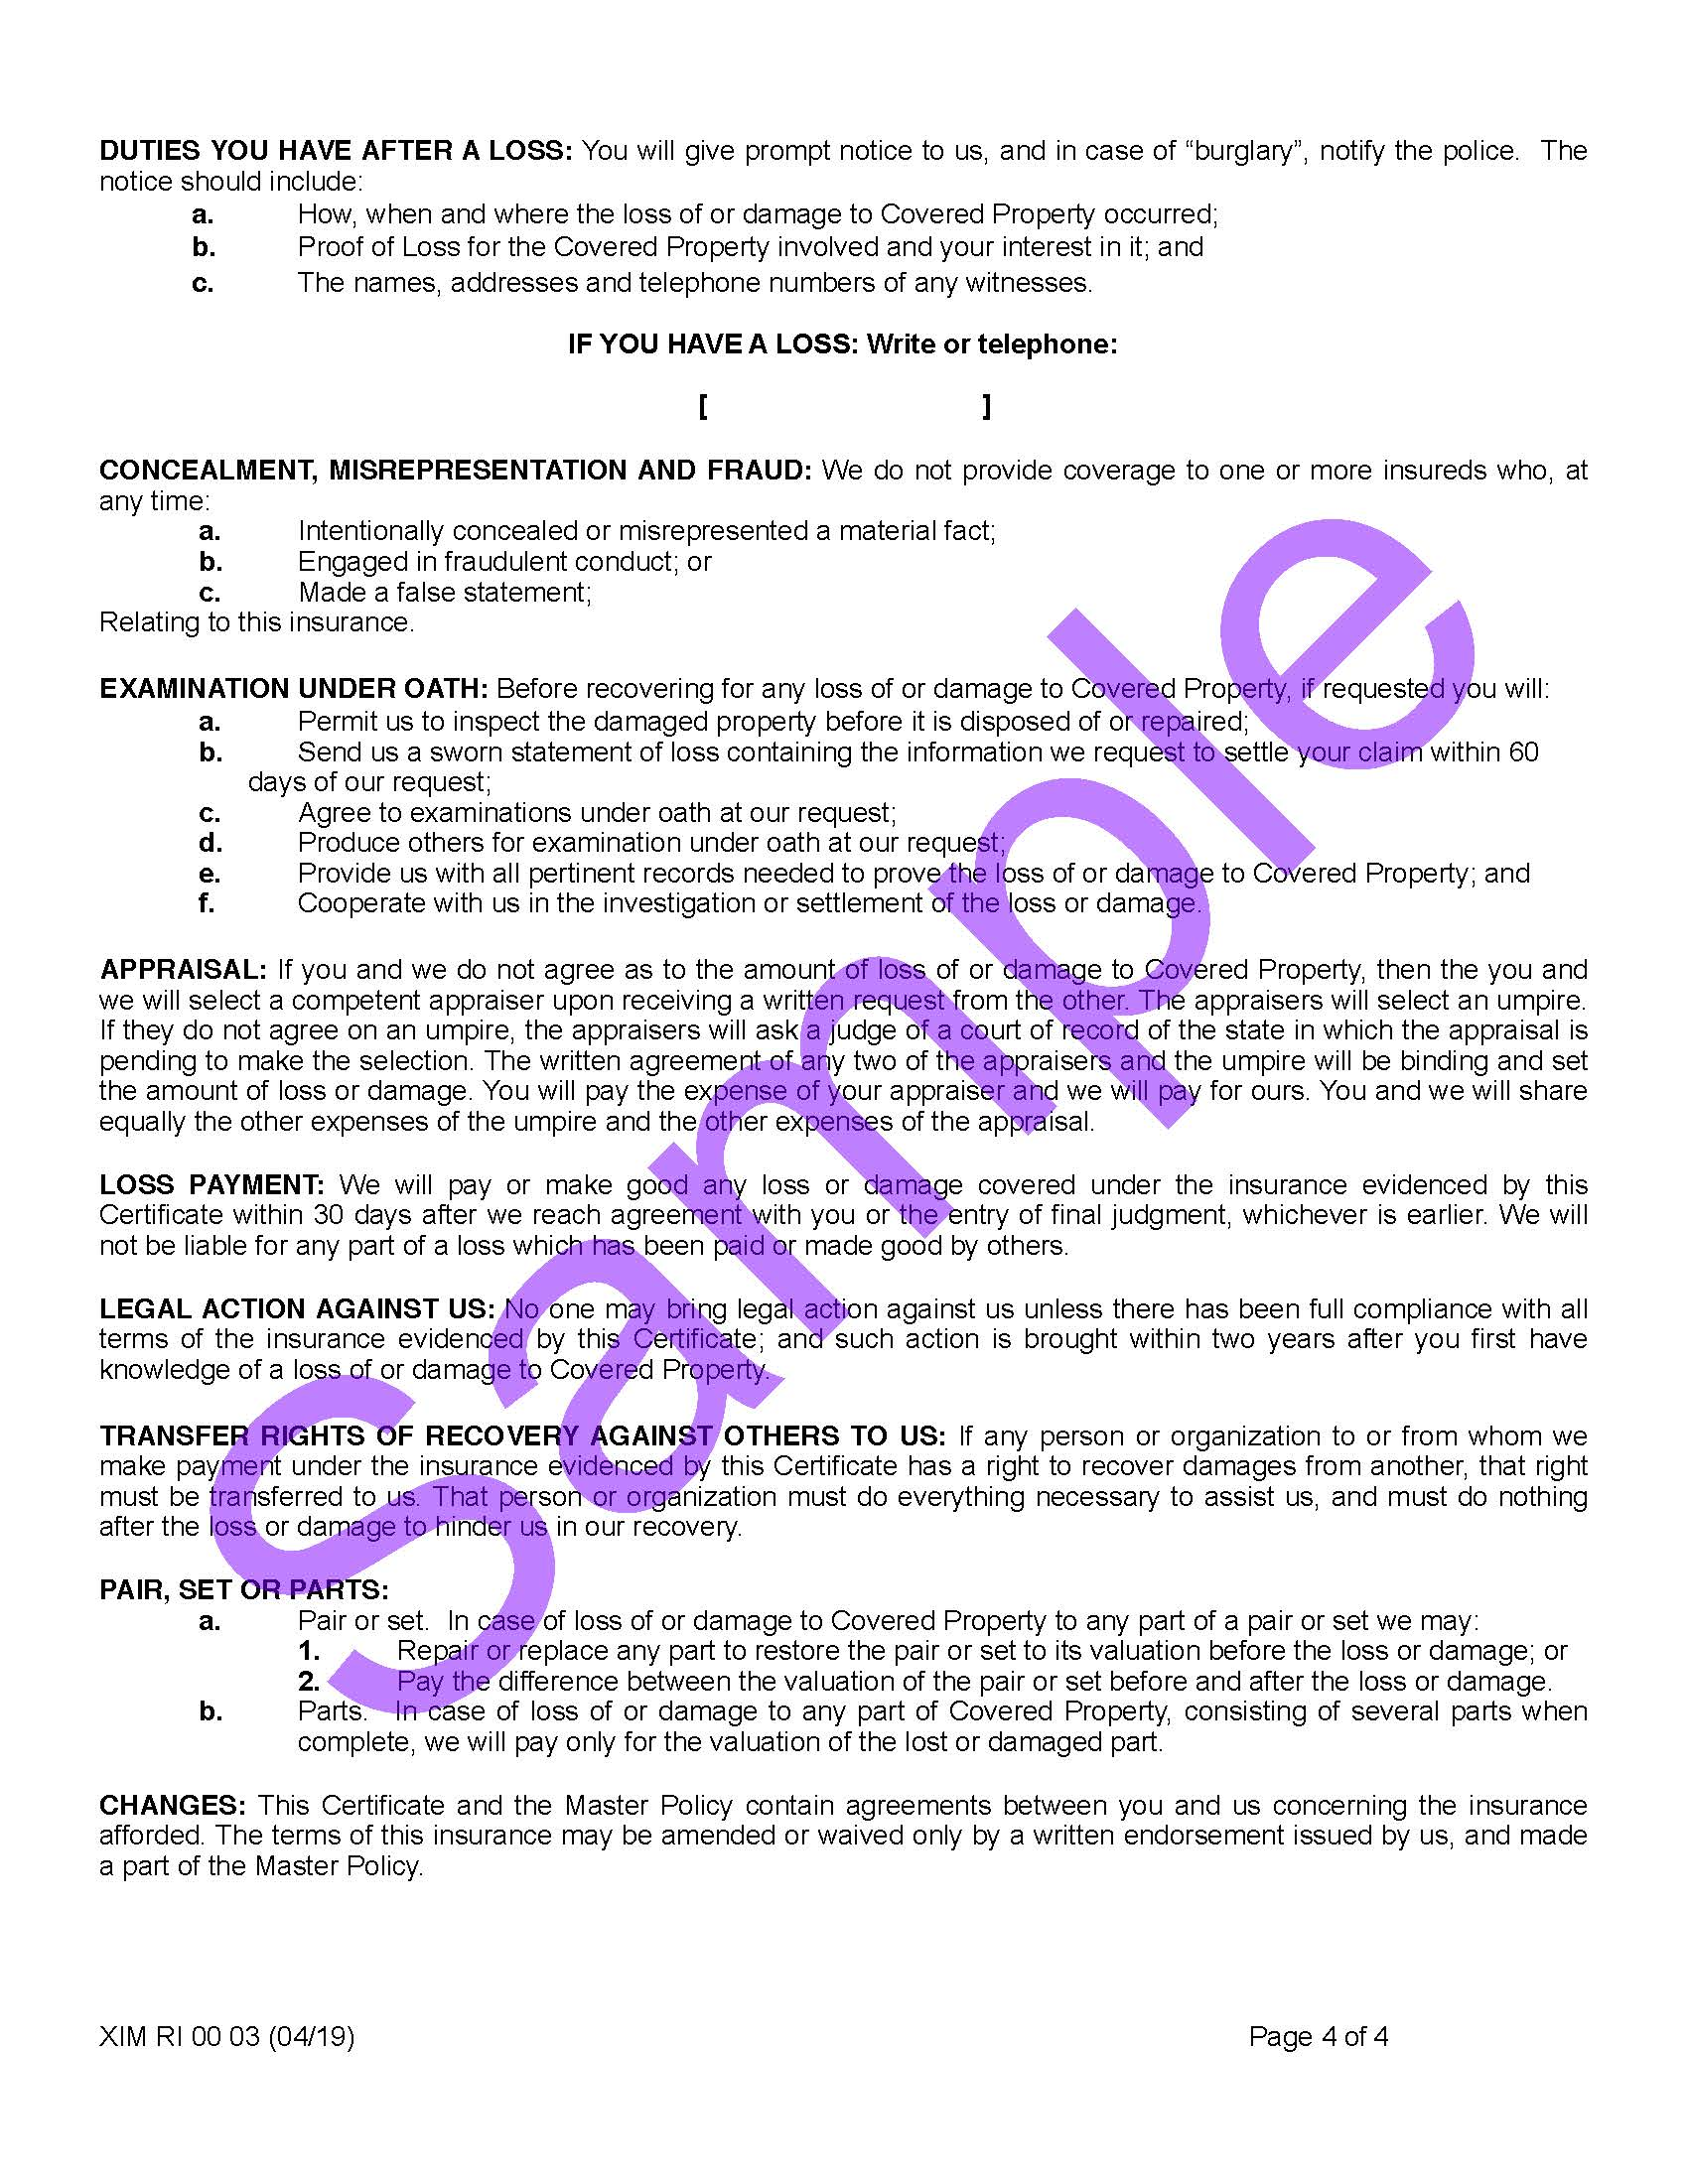 XIM RI 00 03 04 19 Rhode Island Certificate of InsuranceSample_Page_4.jpg